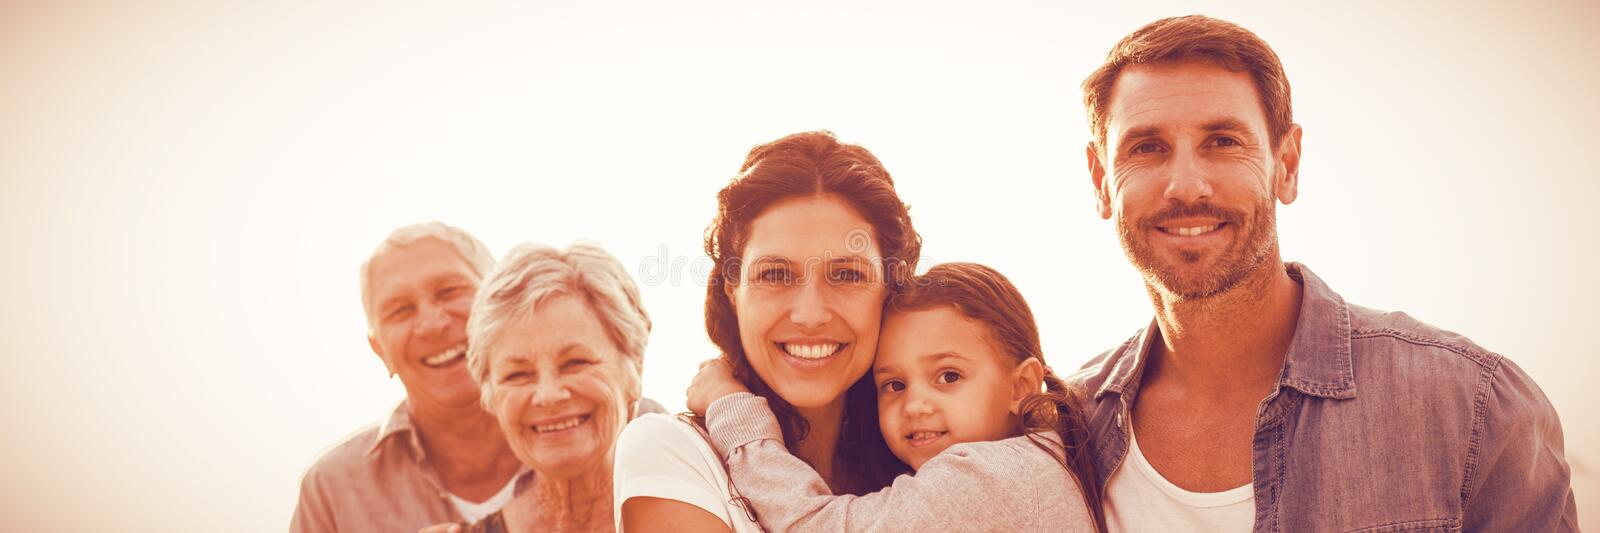 Portrait of family at beach royalty free stock photos